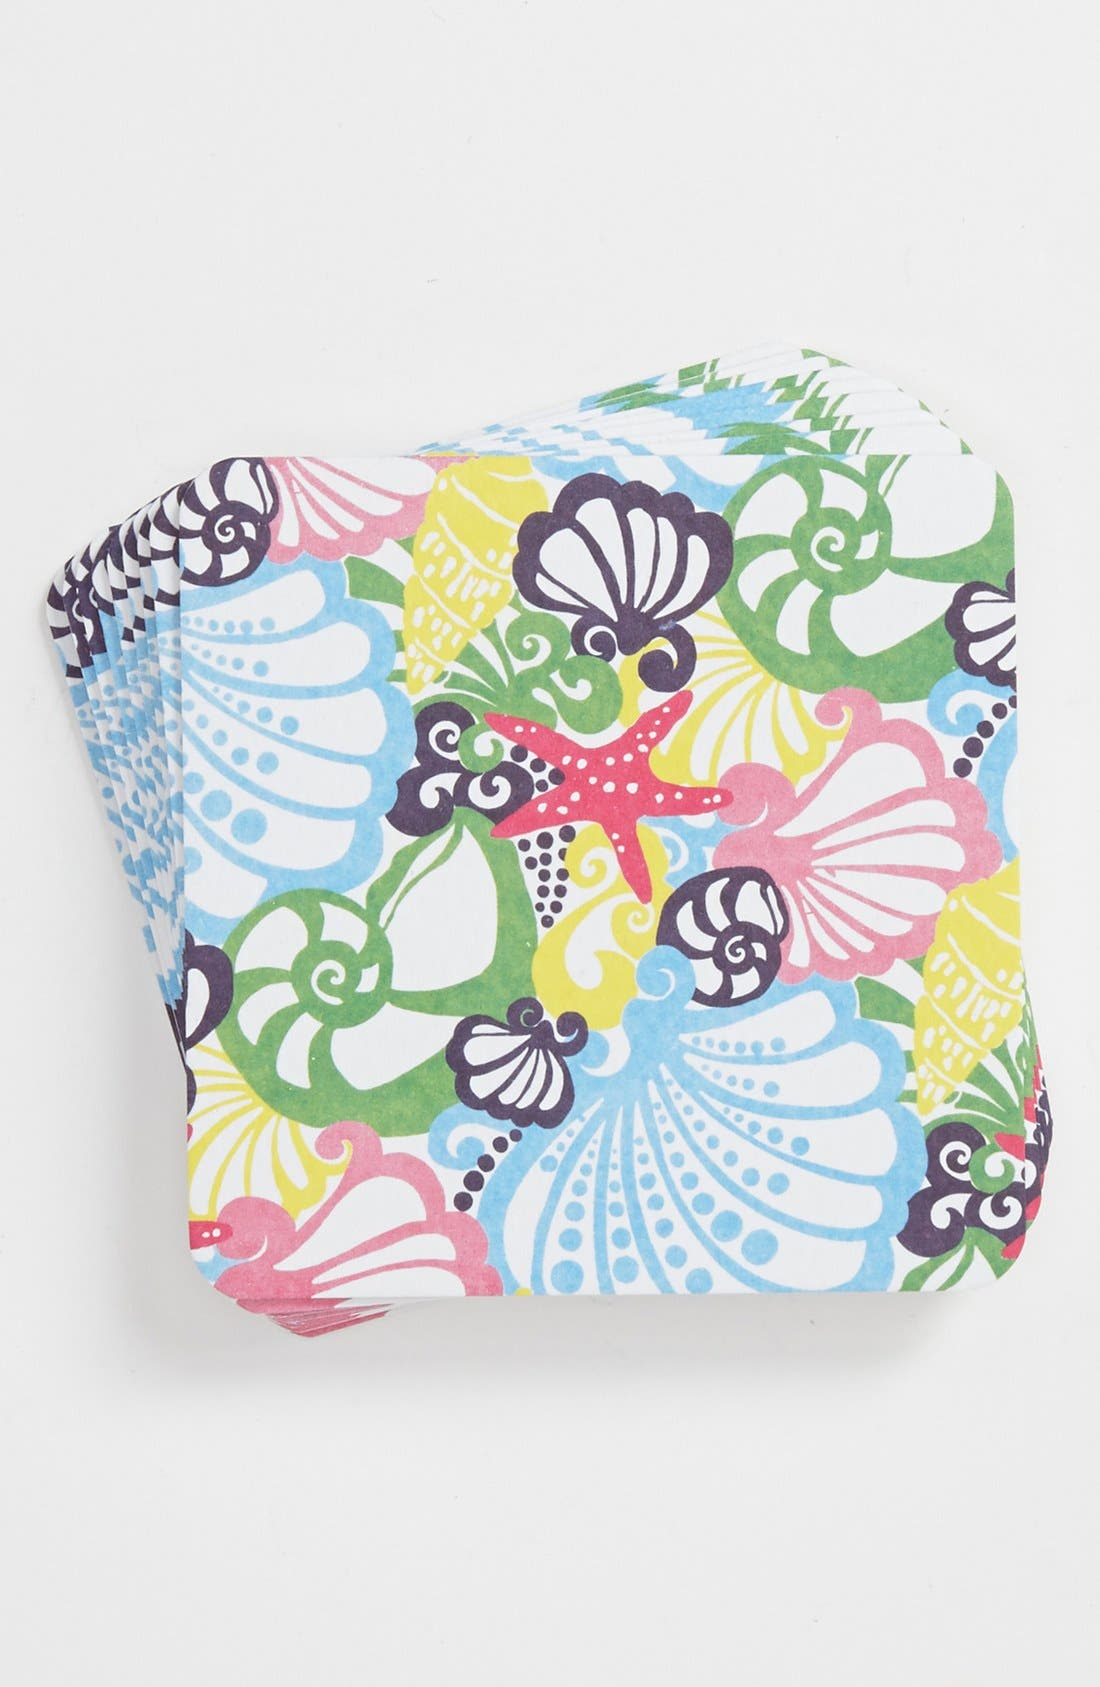 Alternate Image 1 Selected - Lilly Pulitzer® 'Drink Up, Buttercup! - Chiquita Bonita' Paper Coasters (Set of 24)